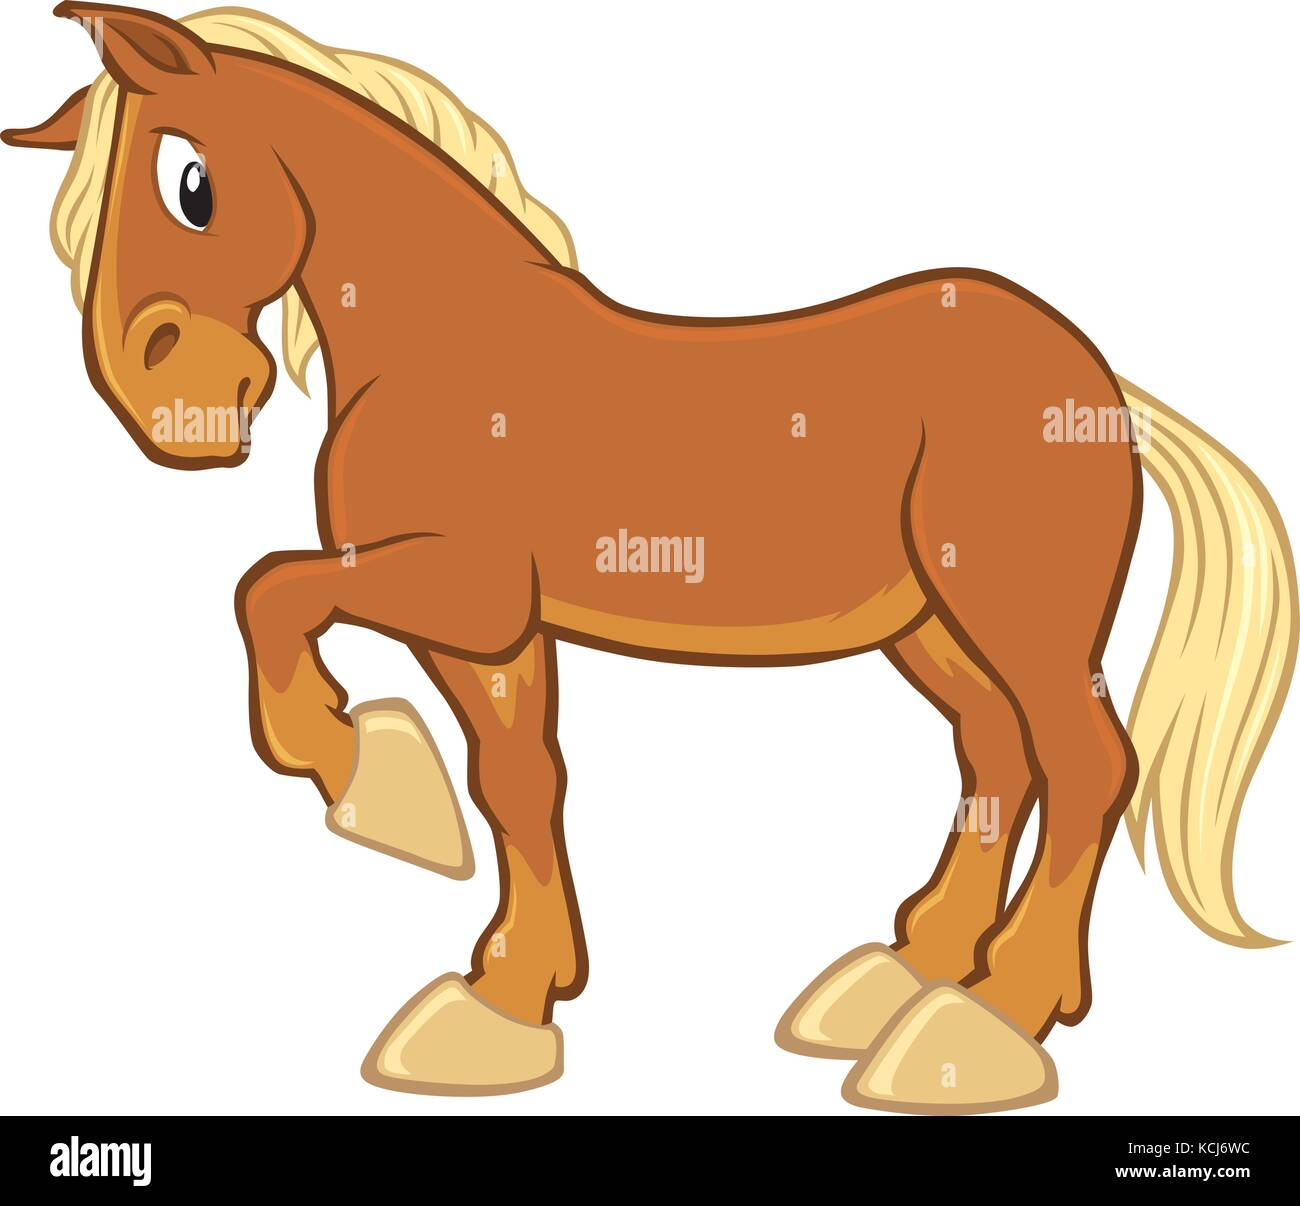 Vector cartoon of a brown horse with beige mane and tale - Stock Vector